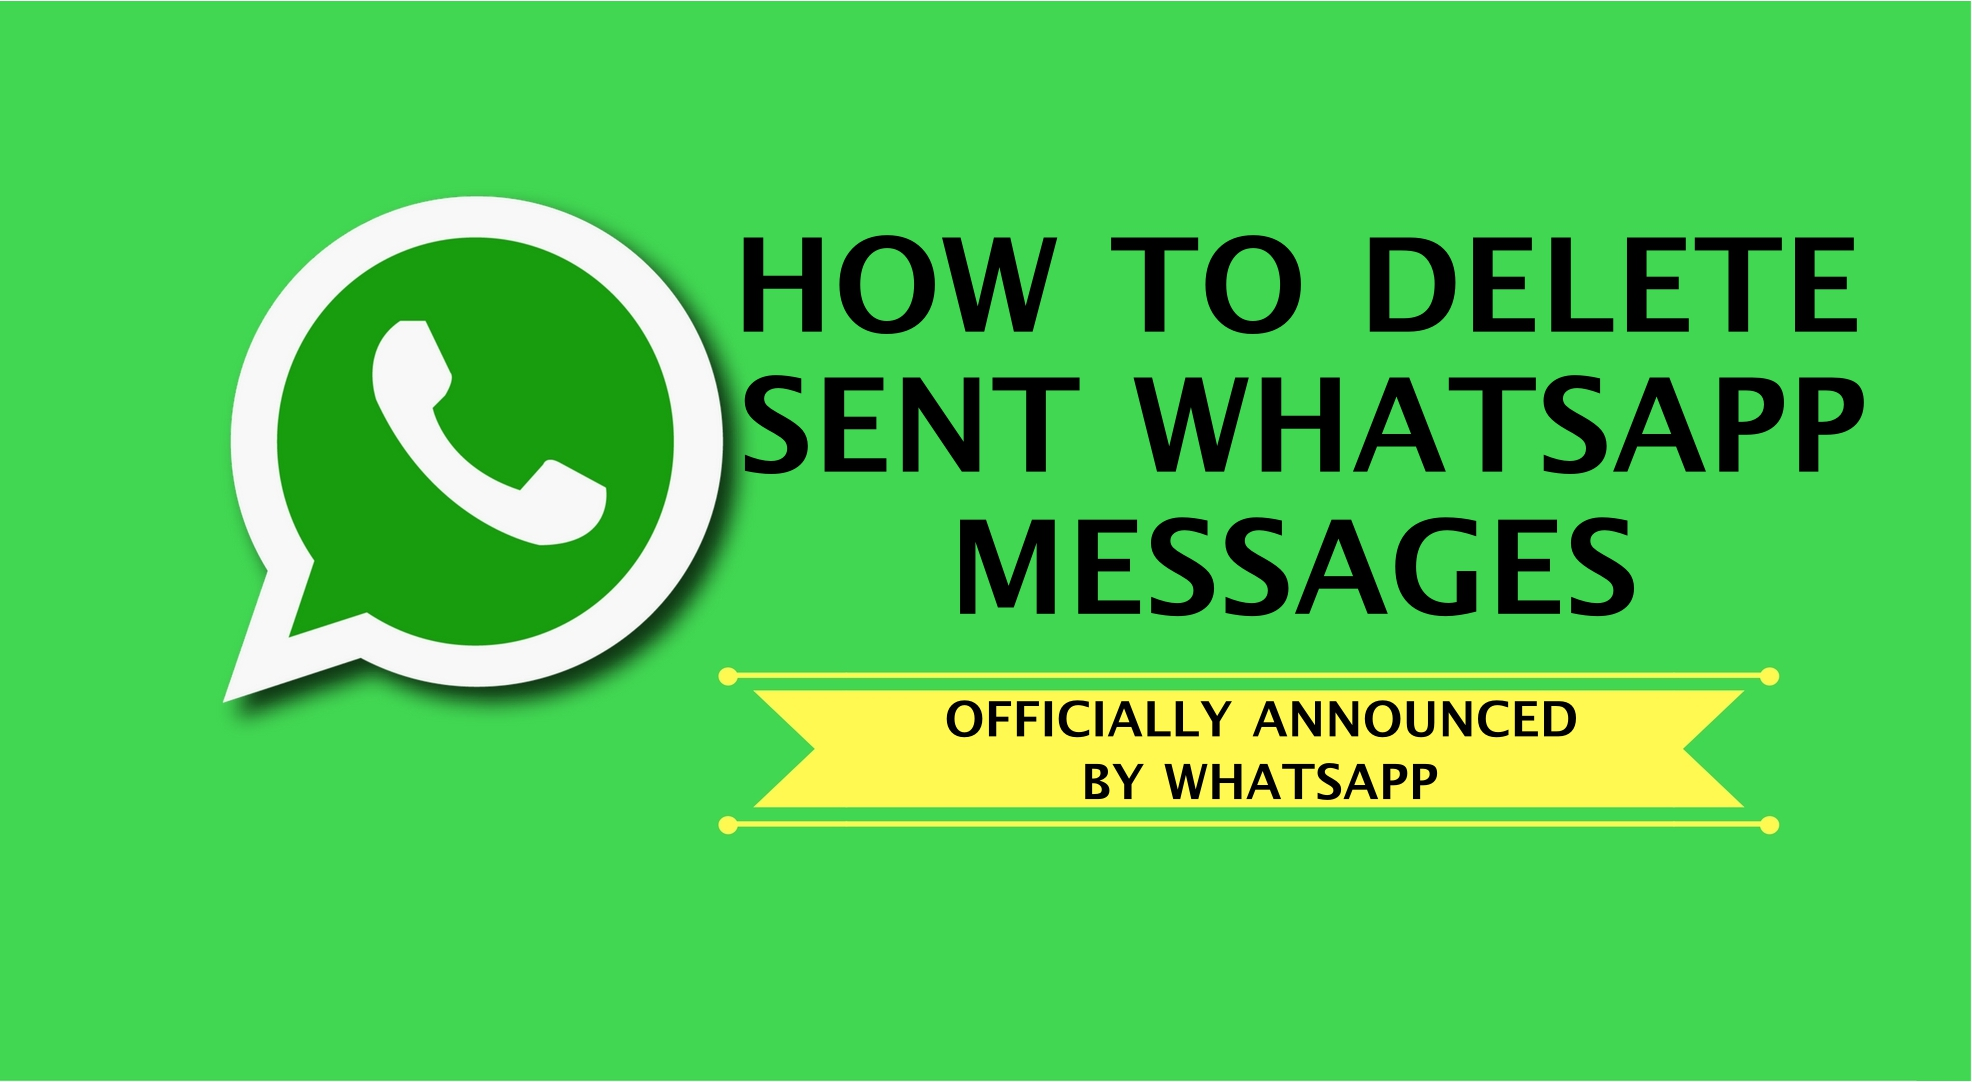 Delete WhatsApp Sent Messages